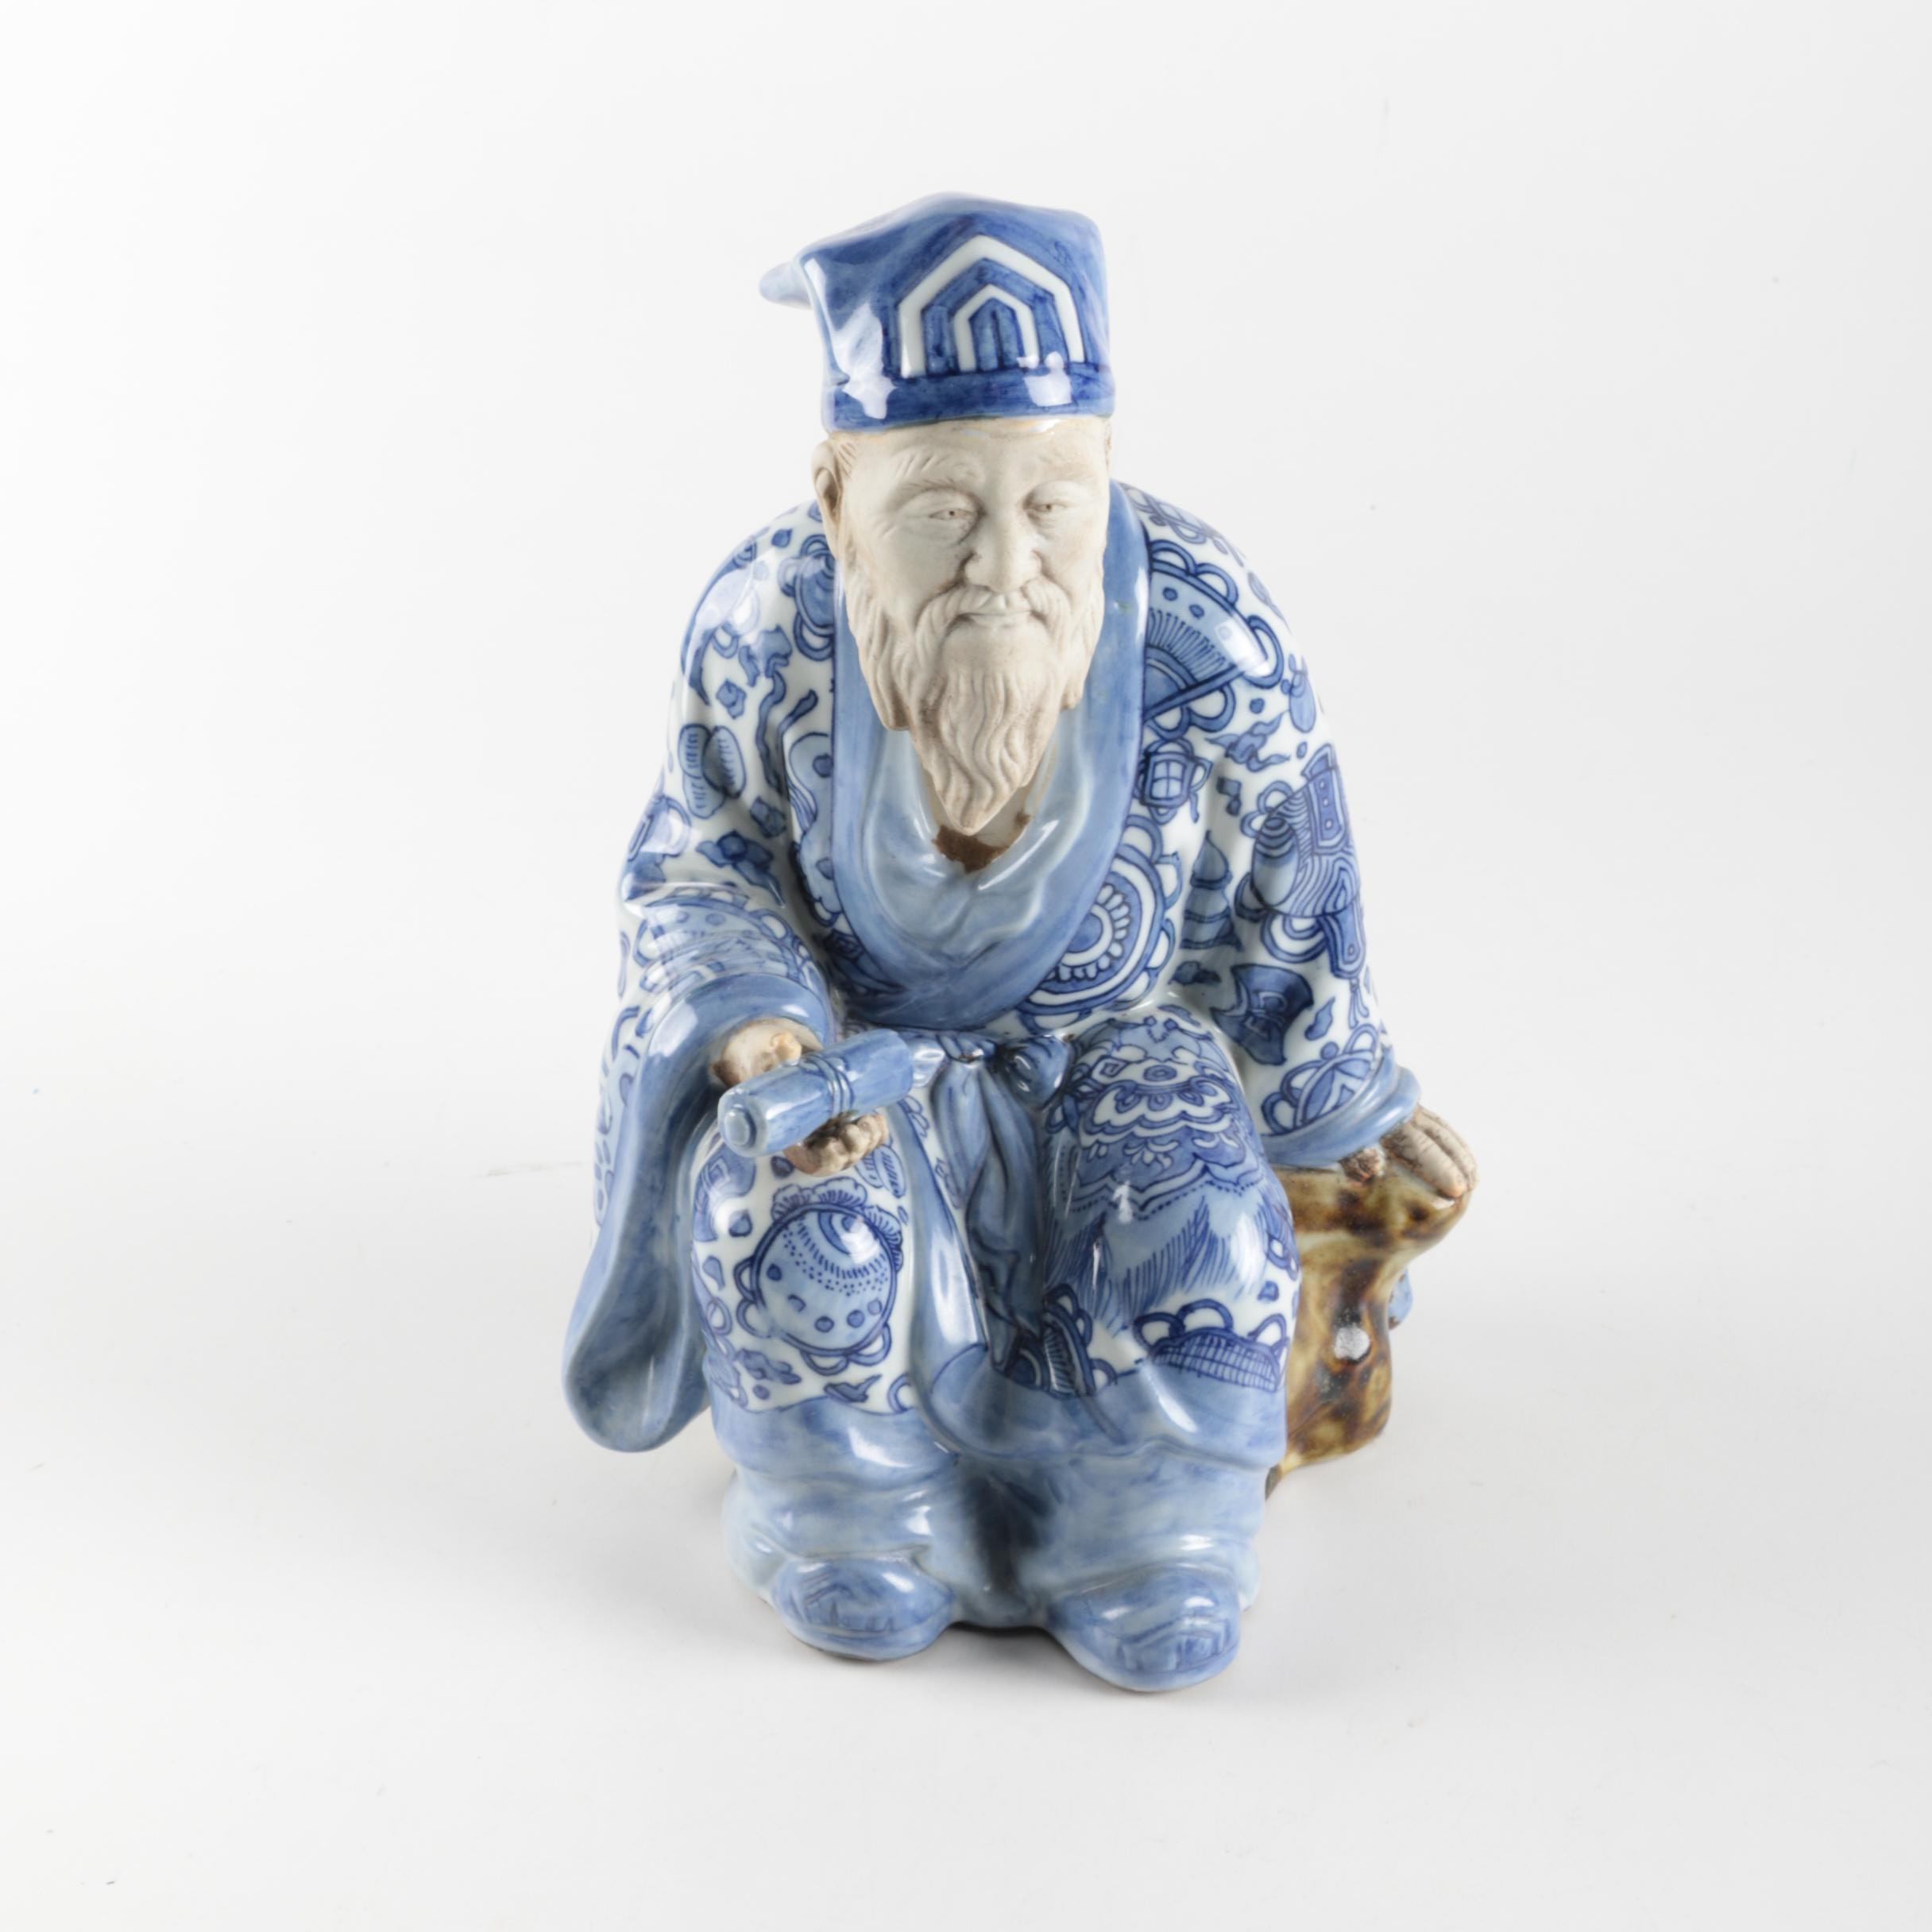 Ceramic Blue and White Chinese Male Figurine